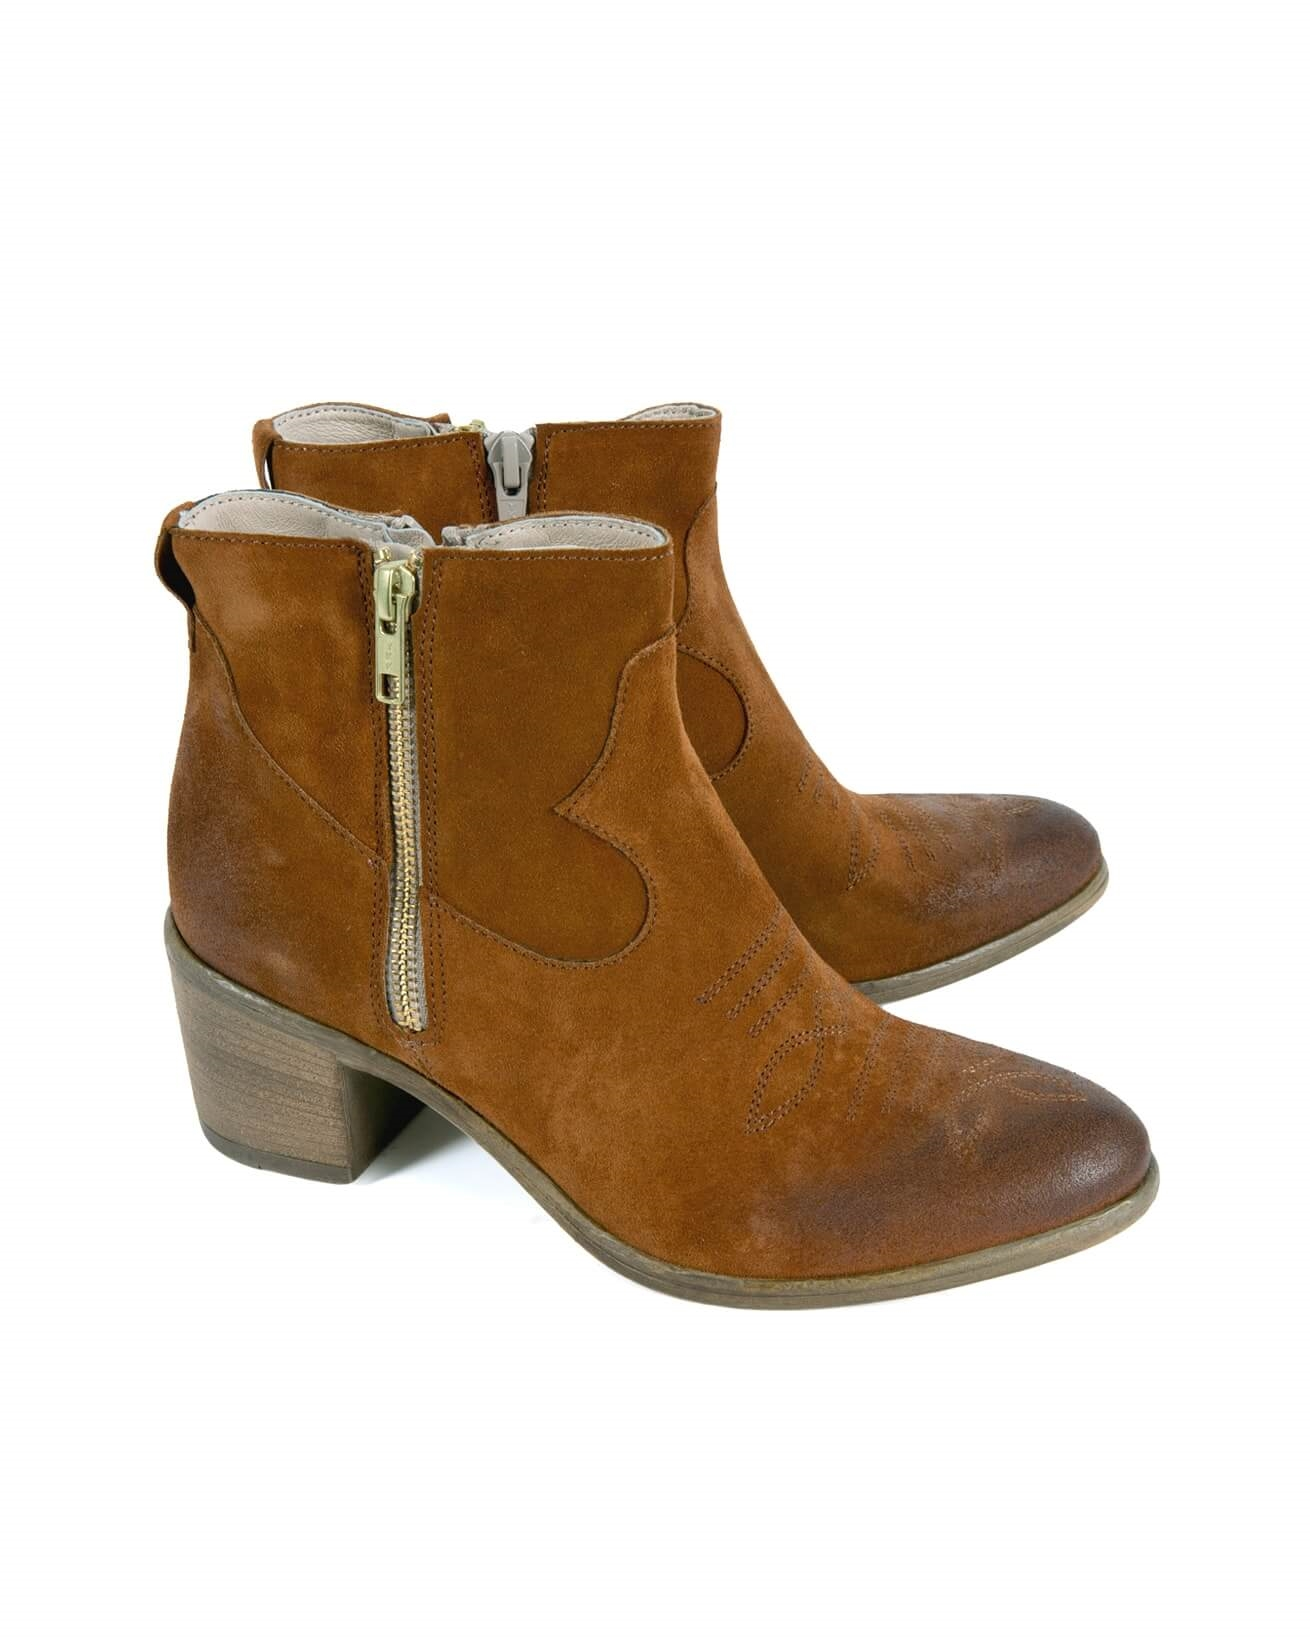 7577_western ankle boots_pair_comp.jpg